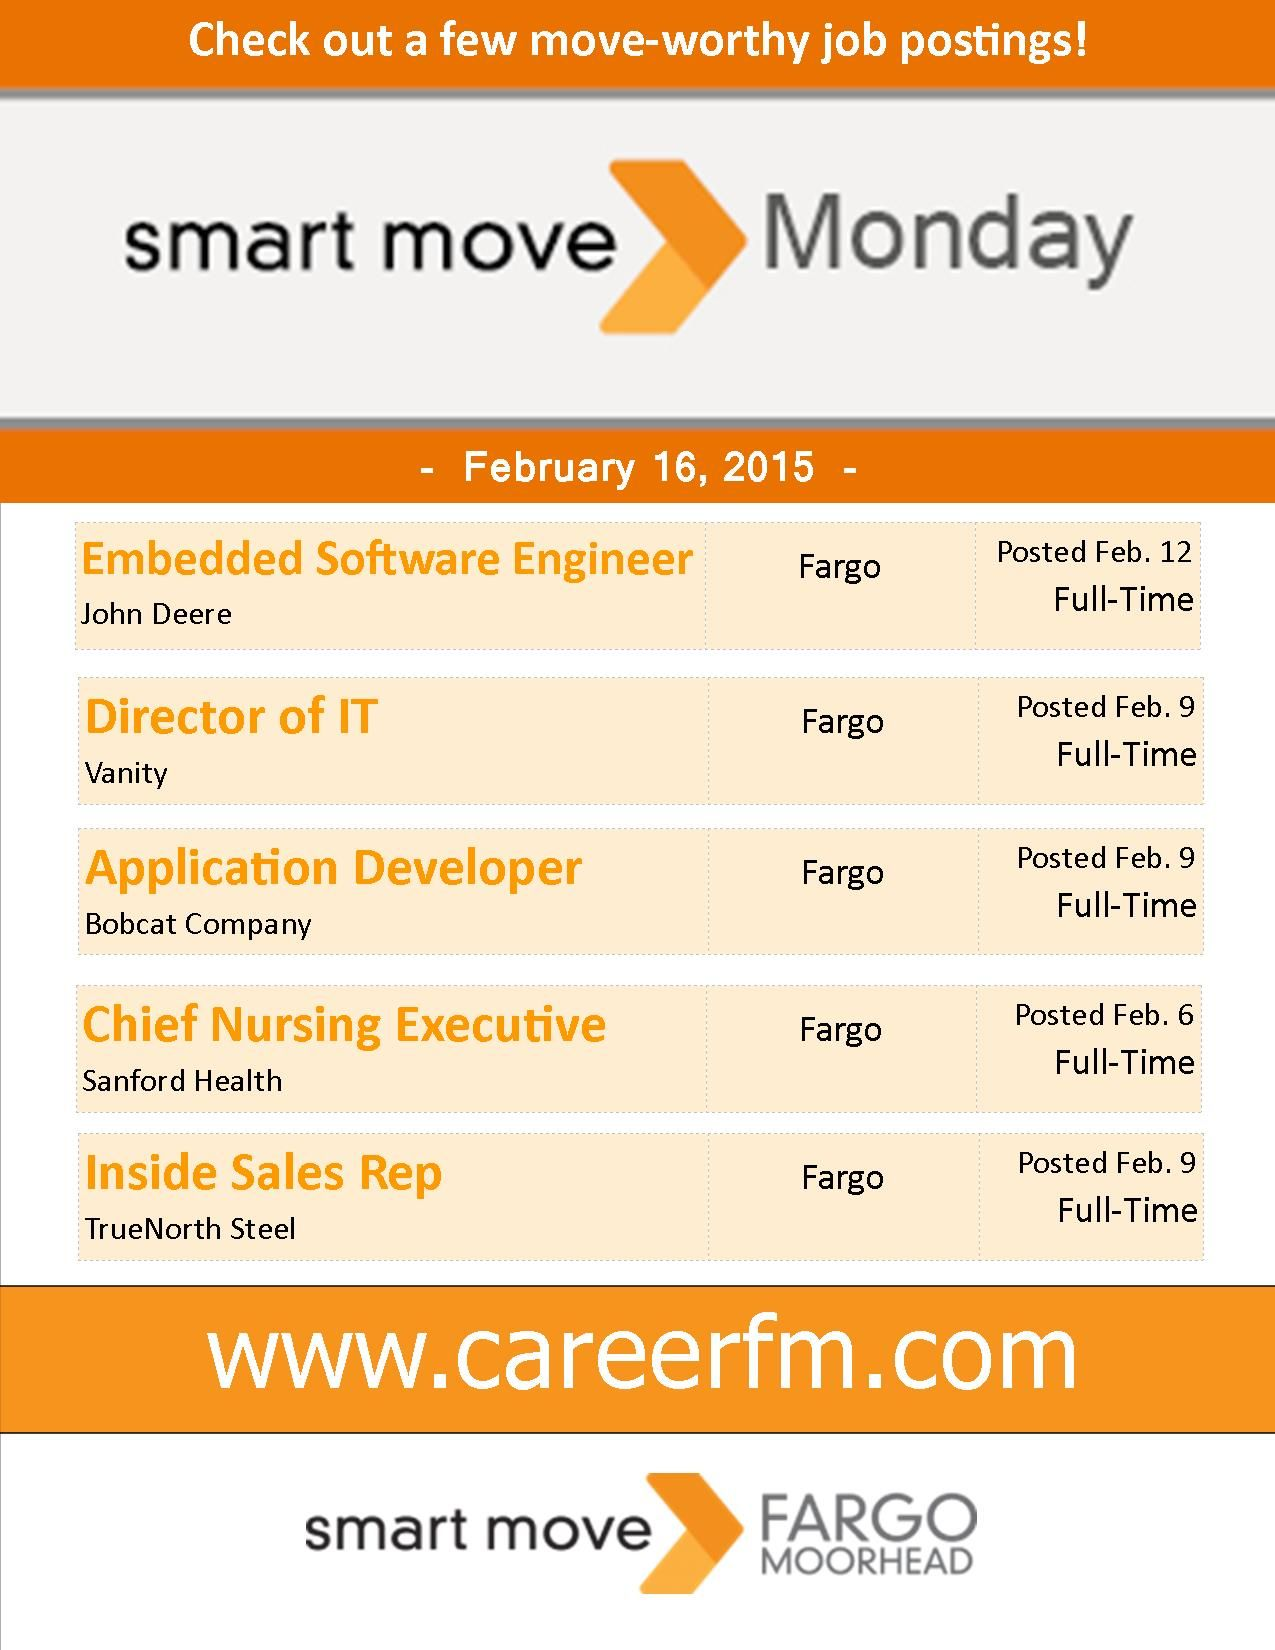 See more great jobs like these at www.CareerFM.com!